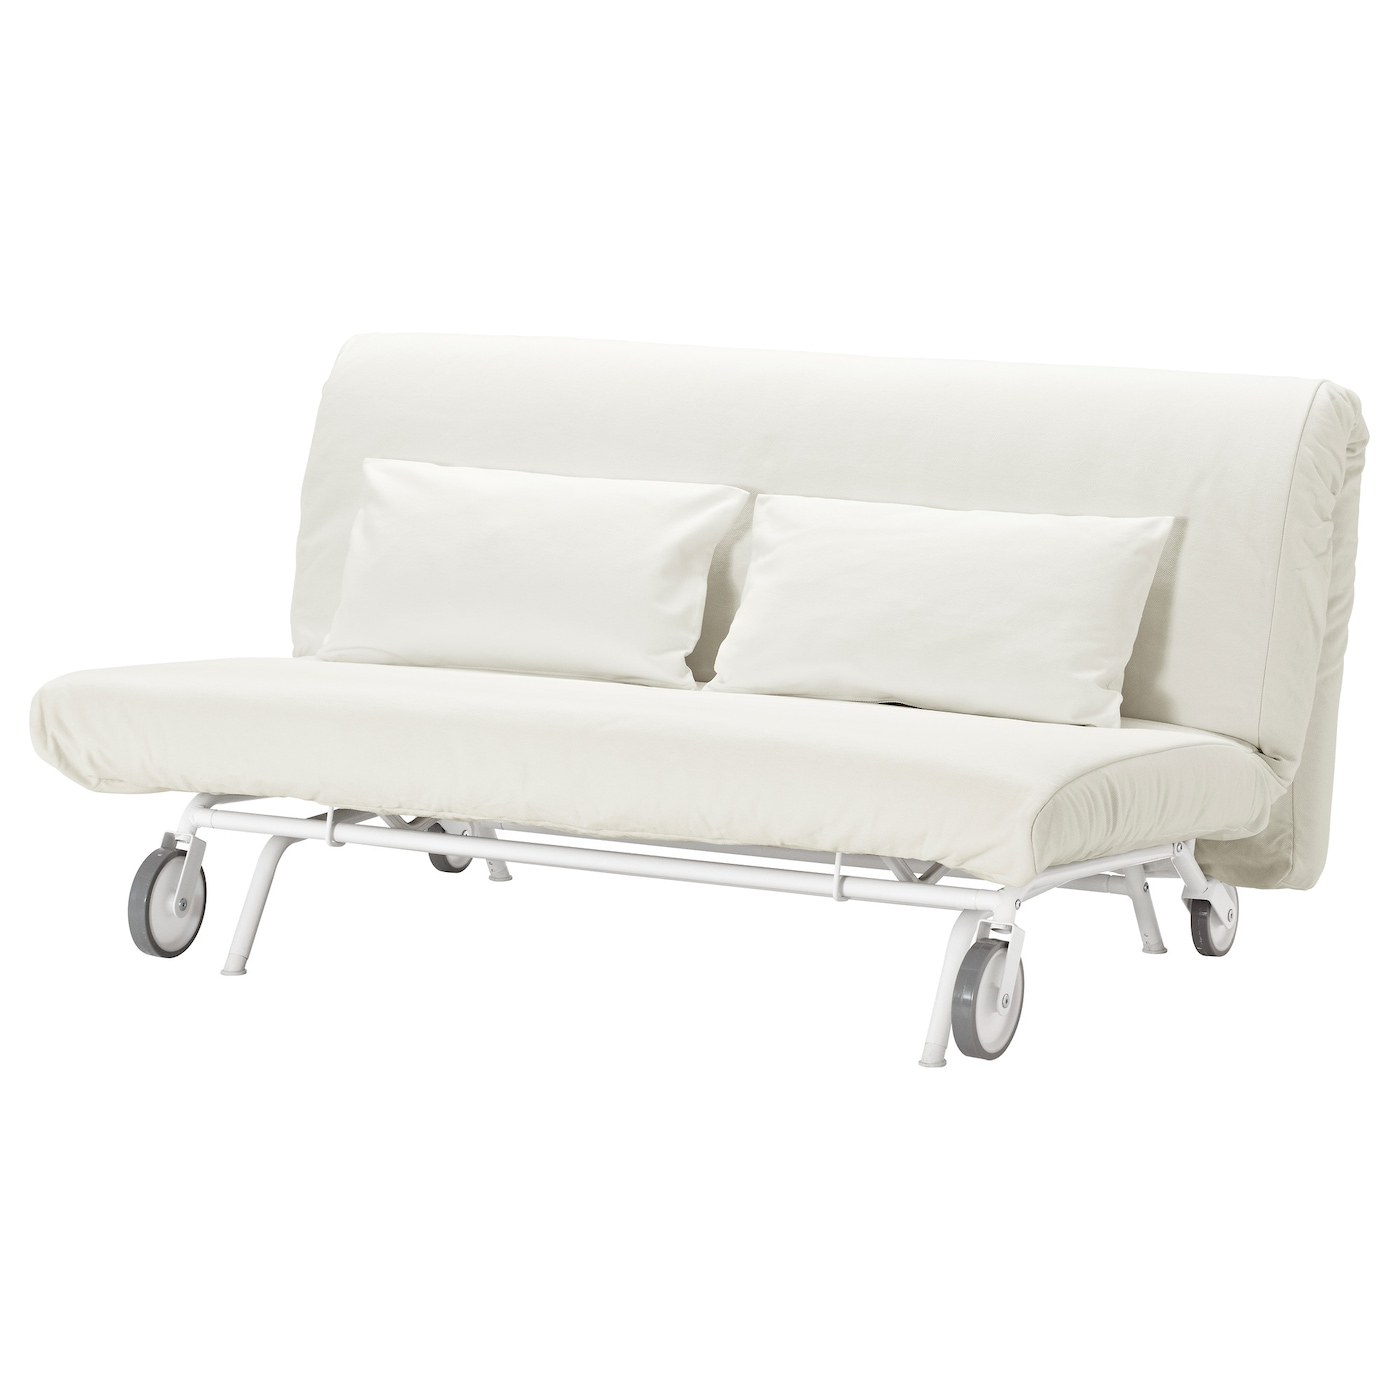 IKEA PS MURBO Twoseat sofabed Grsbo white IKEA